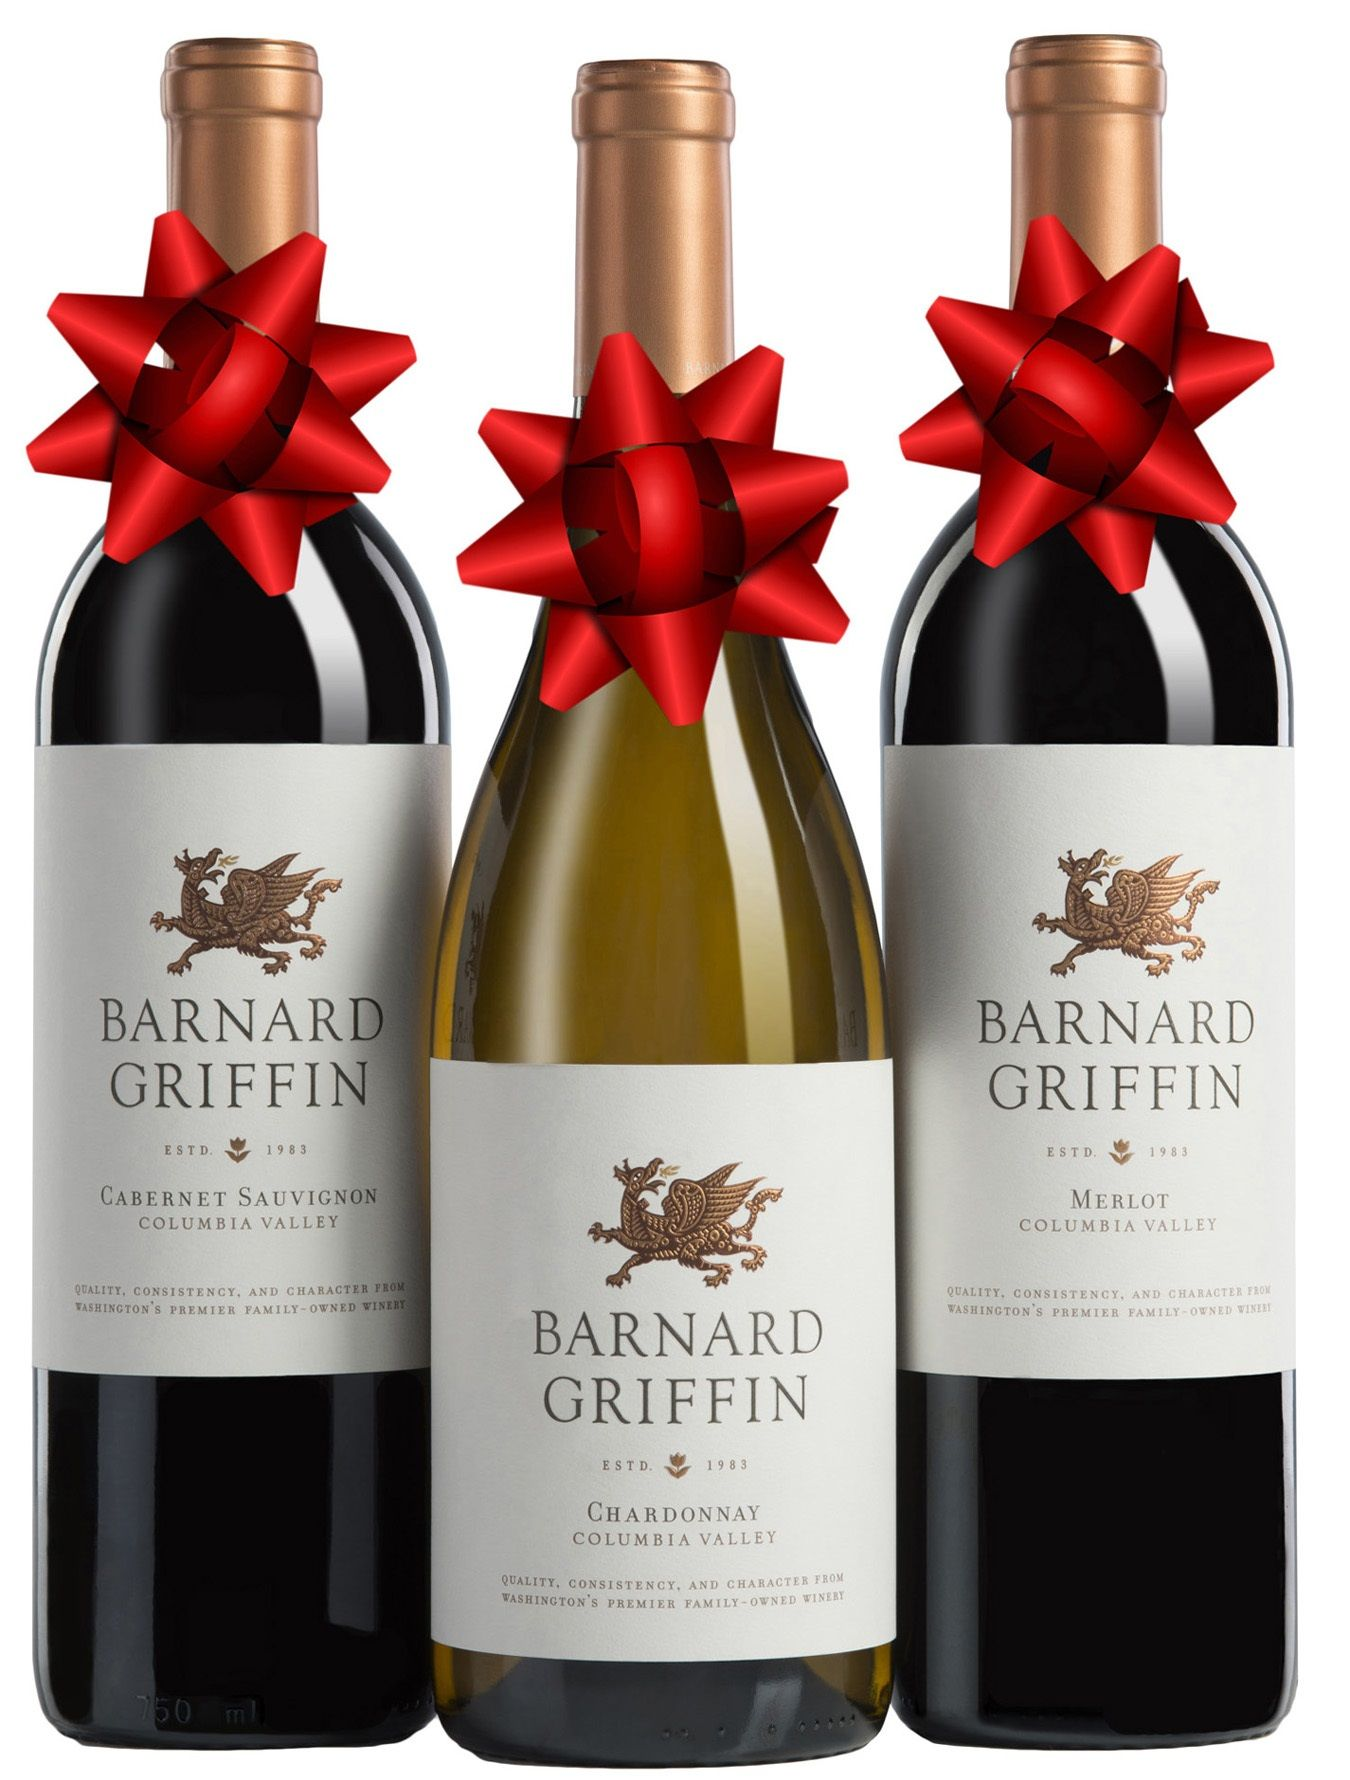 Barnard Griffin The Perfectly Priced Wines For The Holidays A Great Way To Serve Your Guests A Variety Of Award W Washington Wines Wine Winery Tasting Room